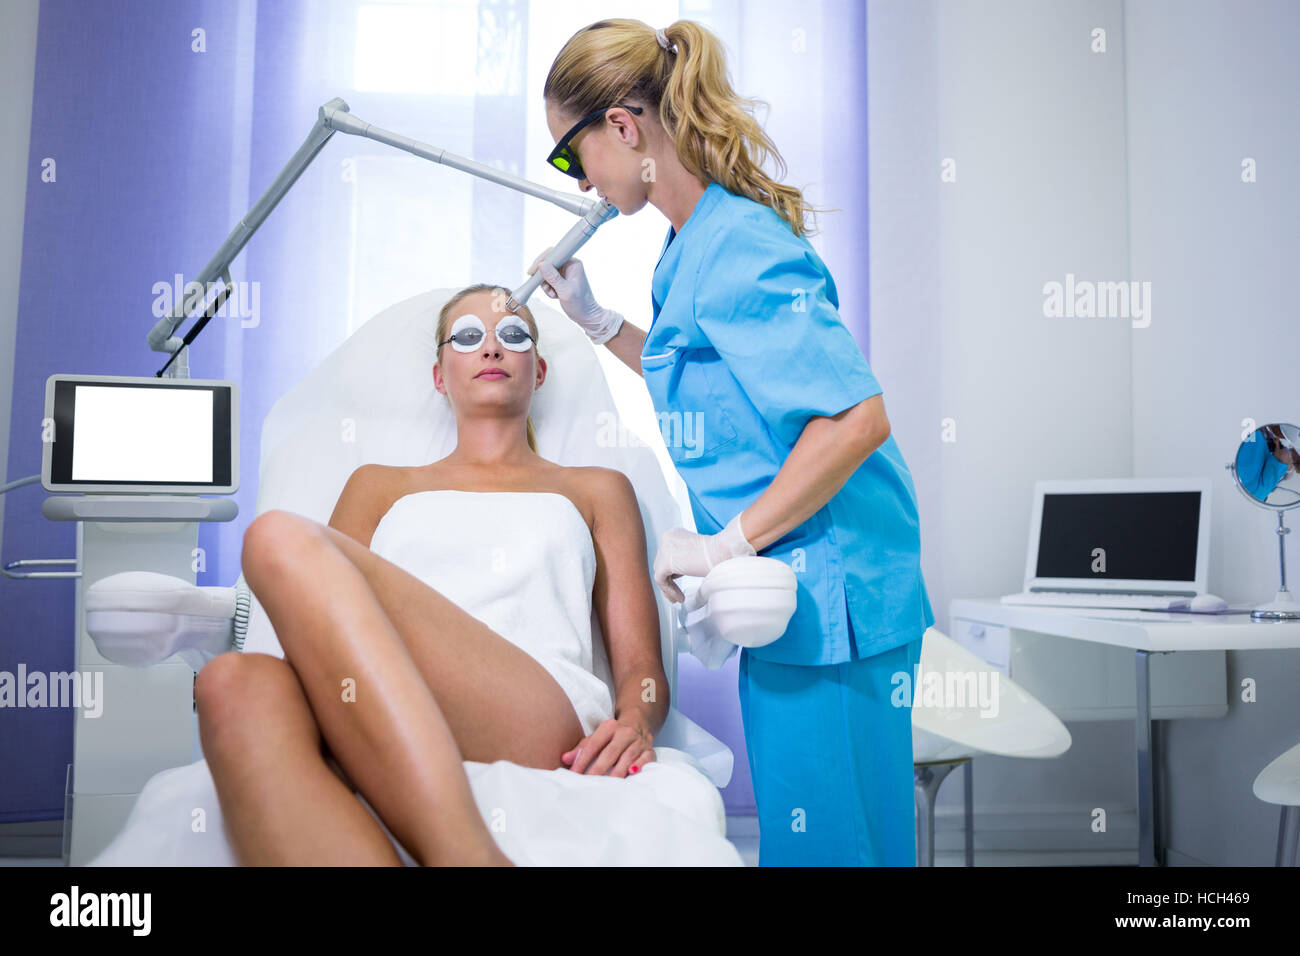 Female patient getting rf lifting procedure - Stock Image